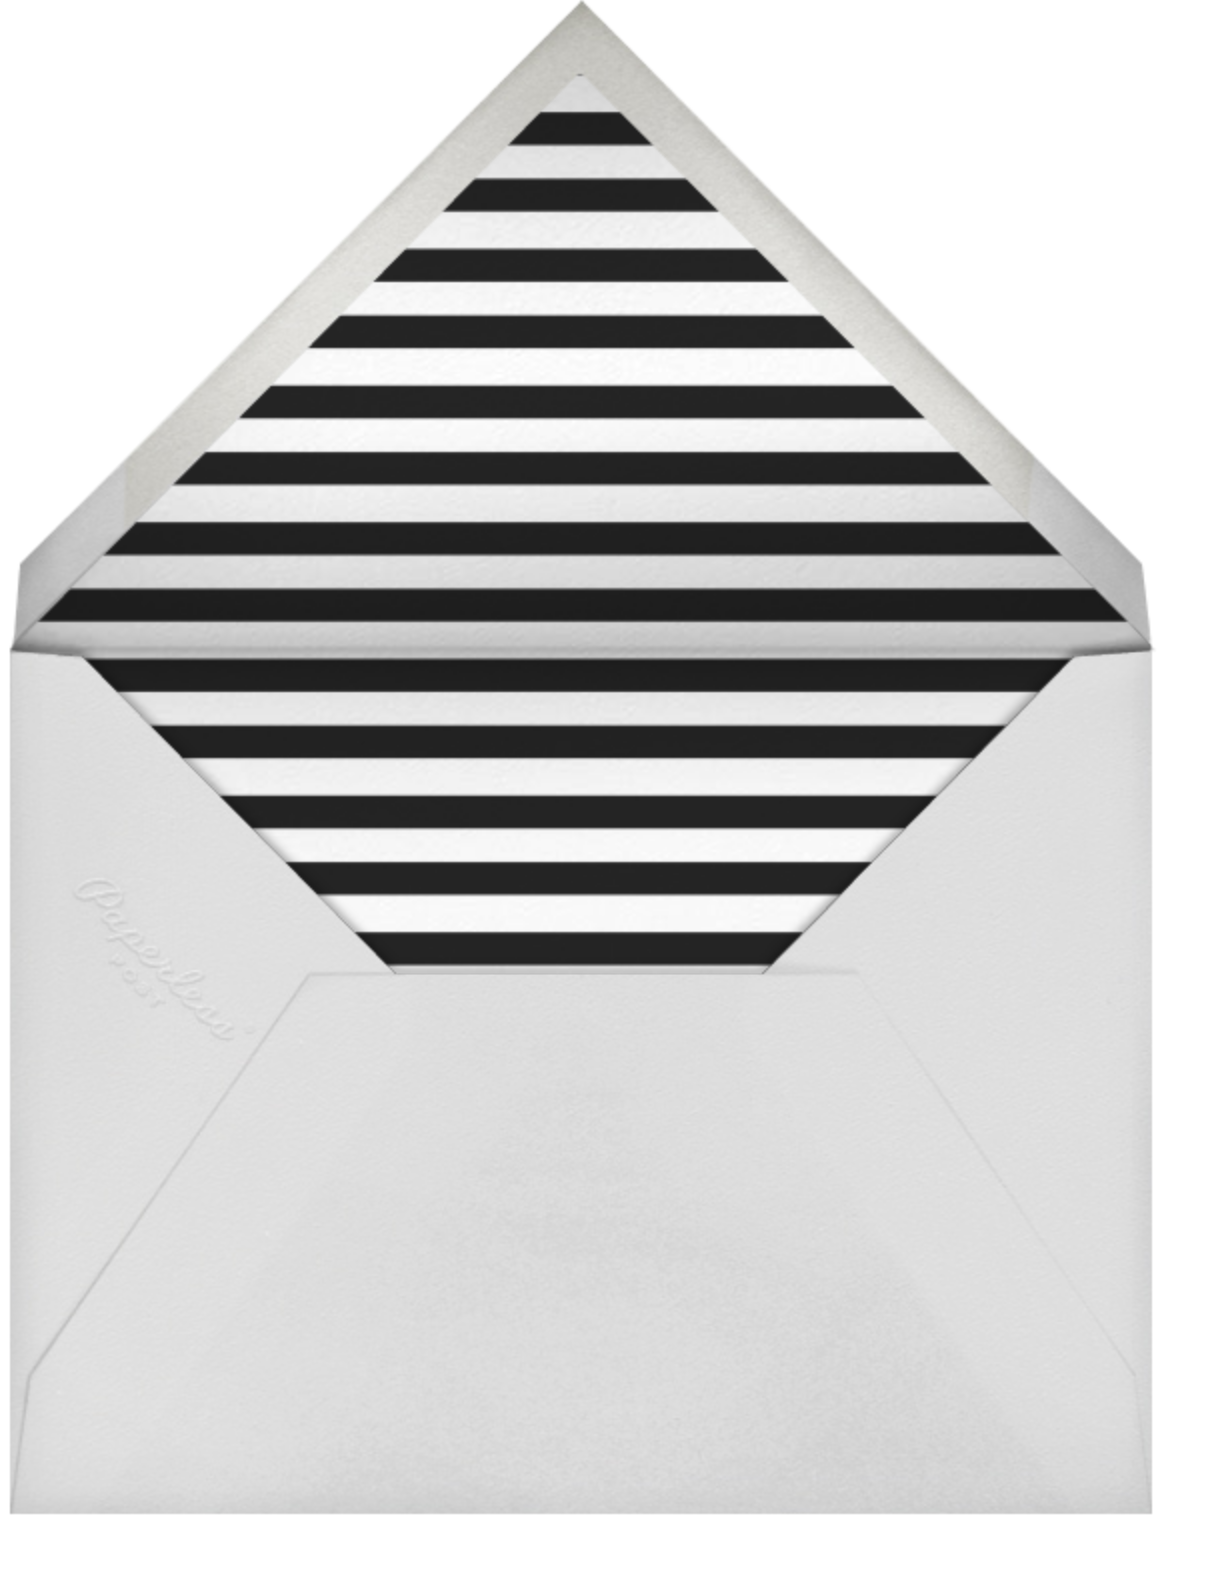 Confetti - White/Silver - kate spade new york - Engagement party - envelope back